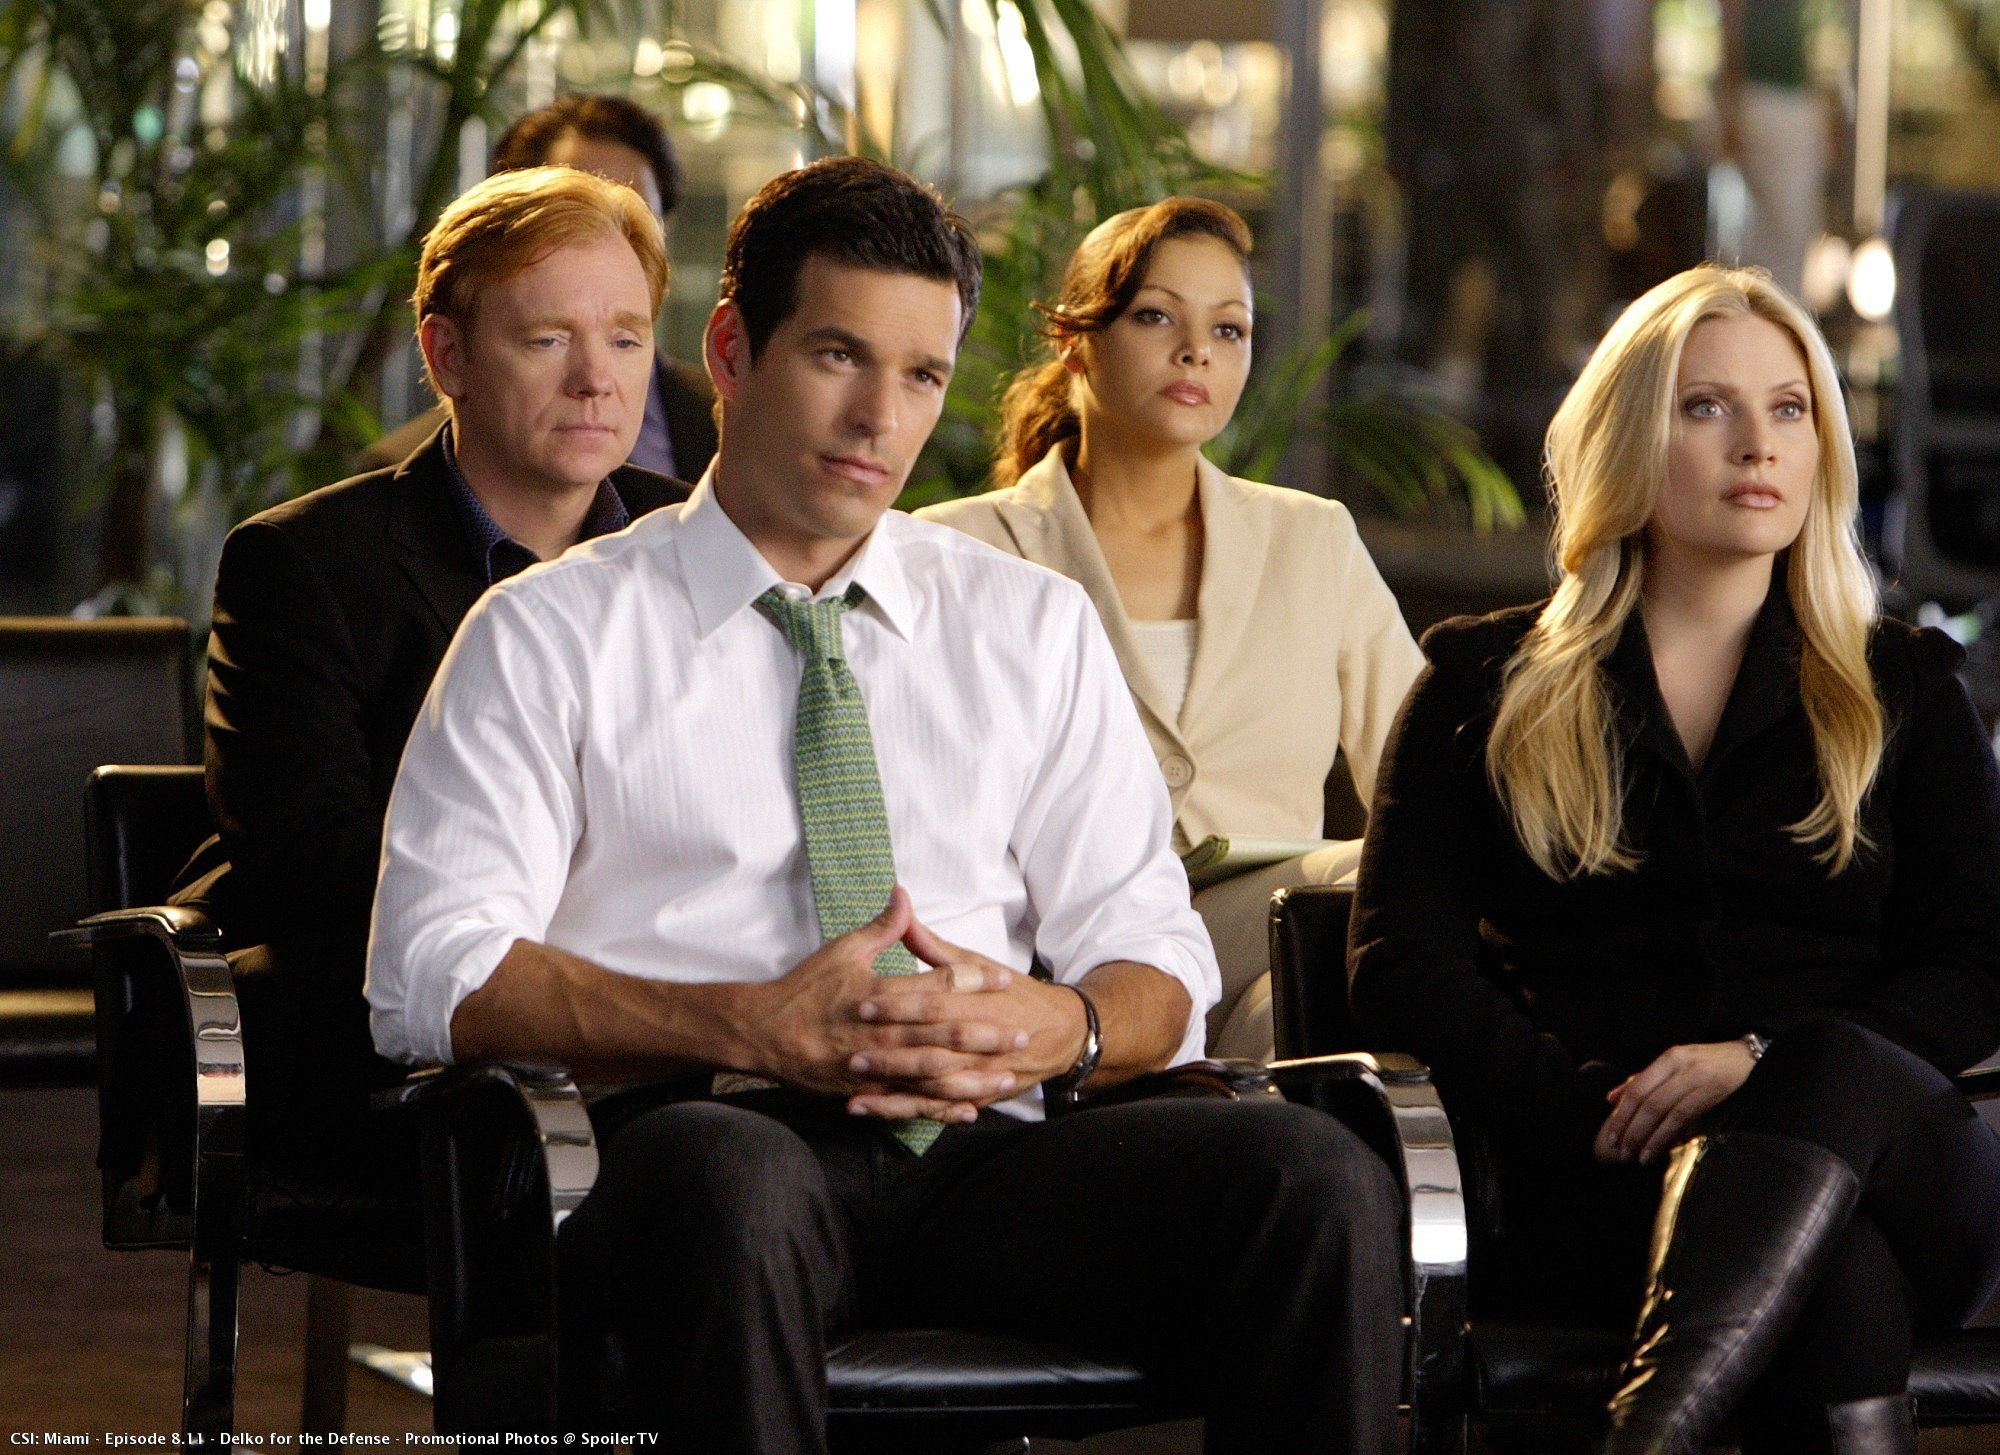 CSI: MIAMI-8.11-Delko for the Defense-Promotional 照片